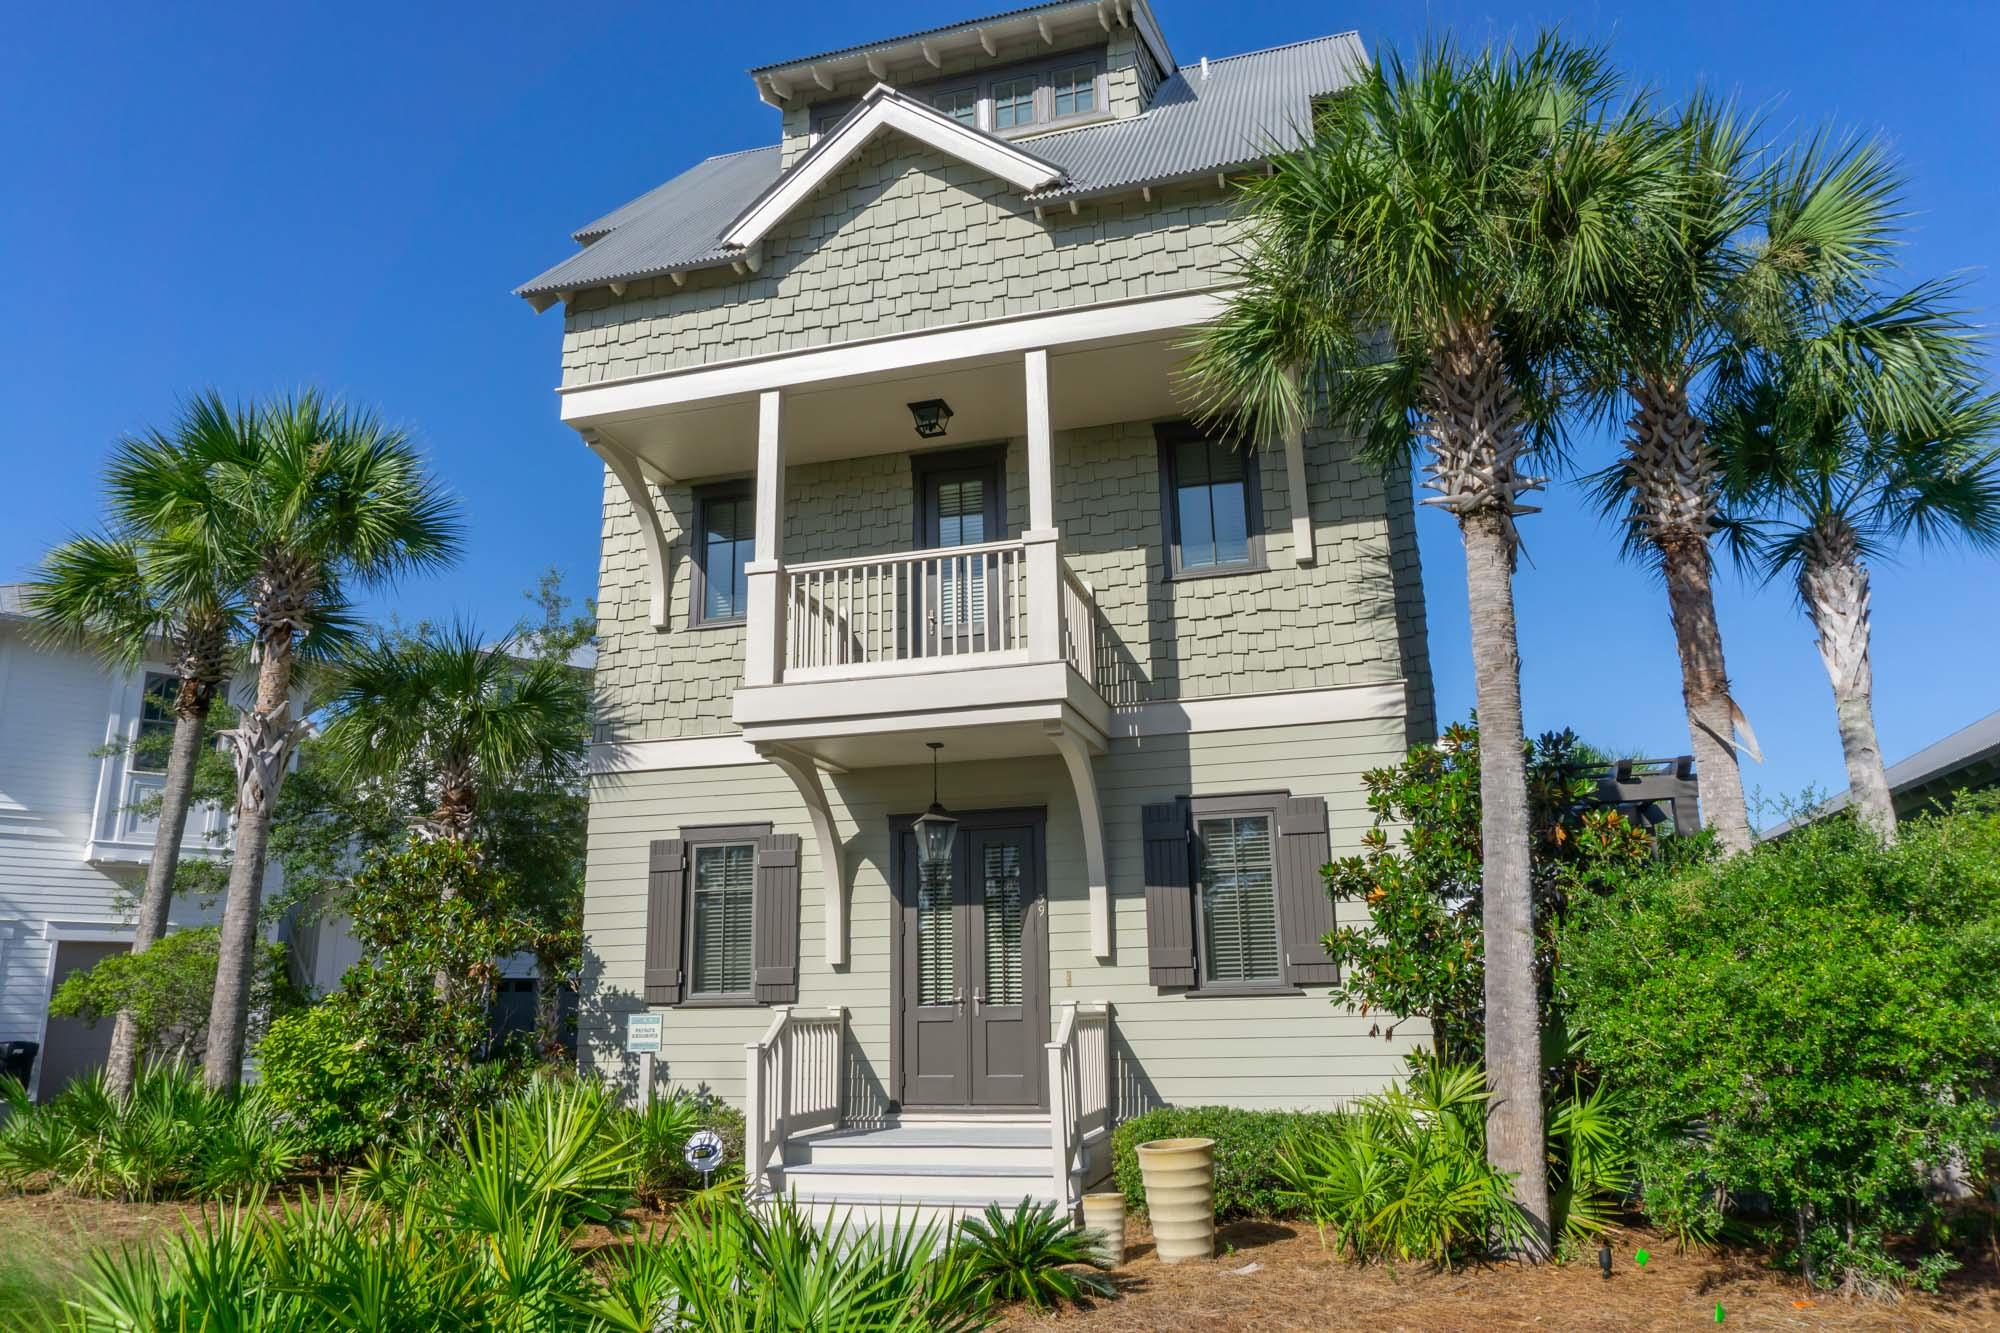 Beautiful and fully furnished 3 story beach home on a corner lot in the tranquil neighborhood of Cyp